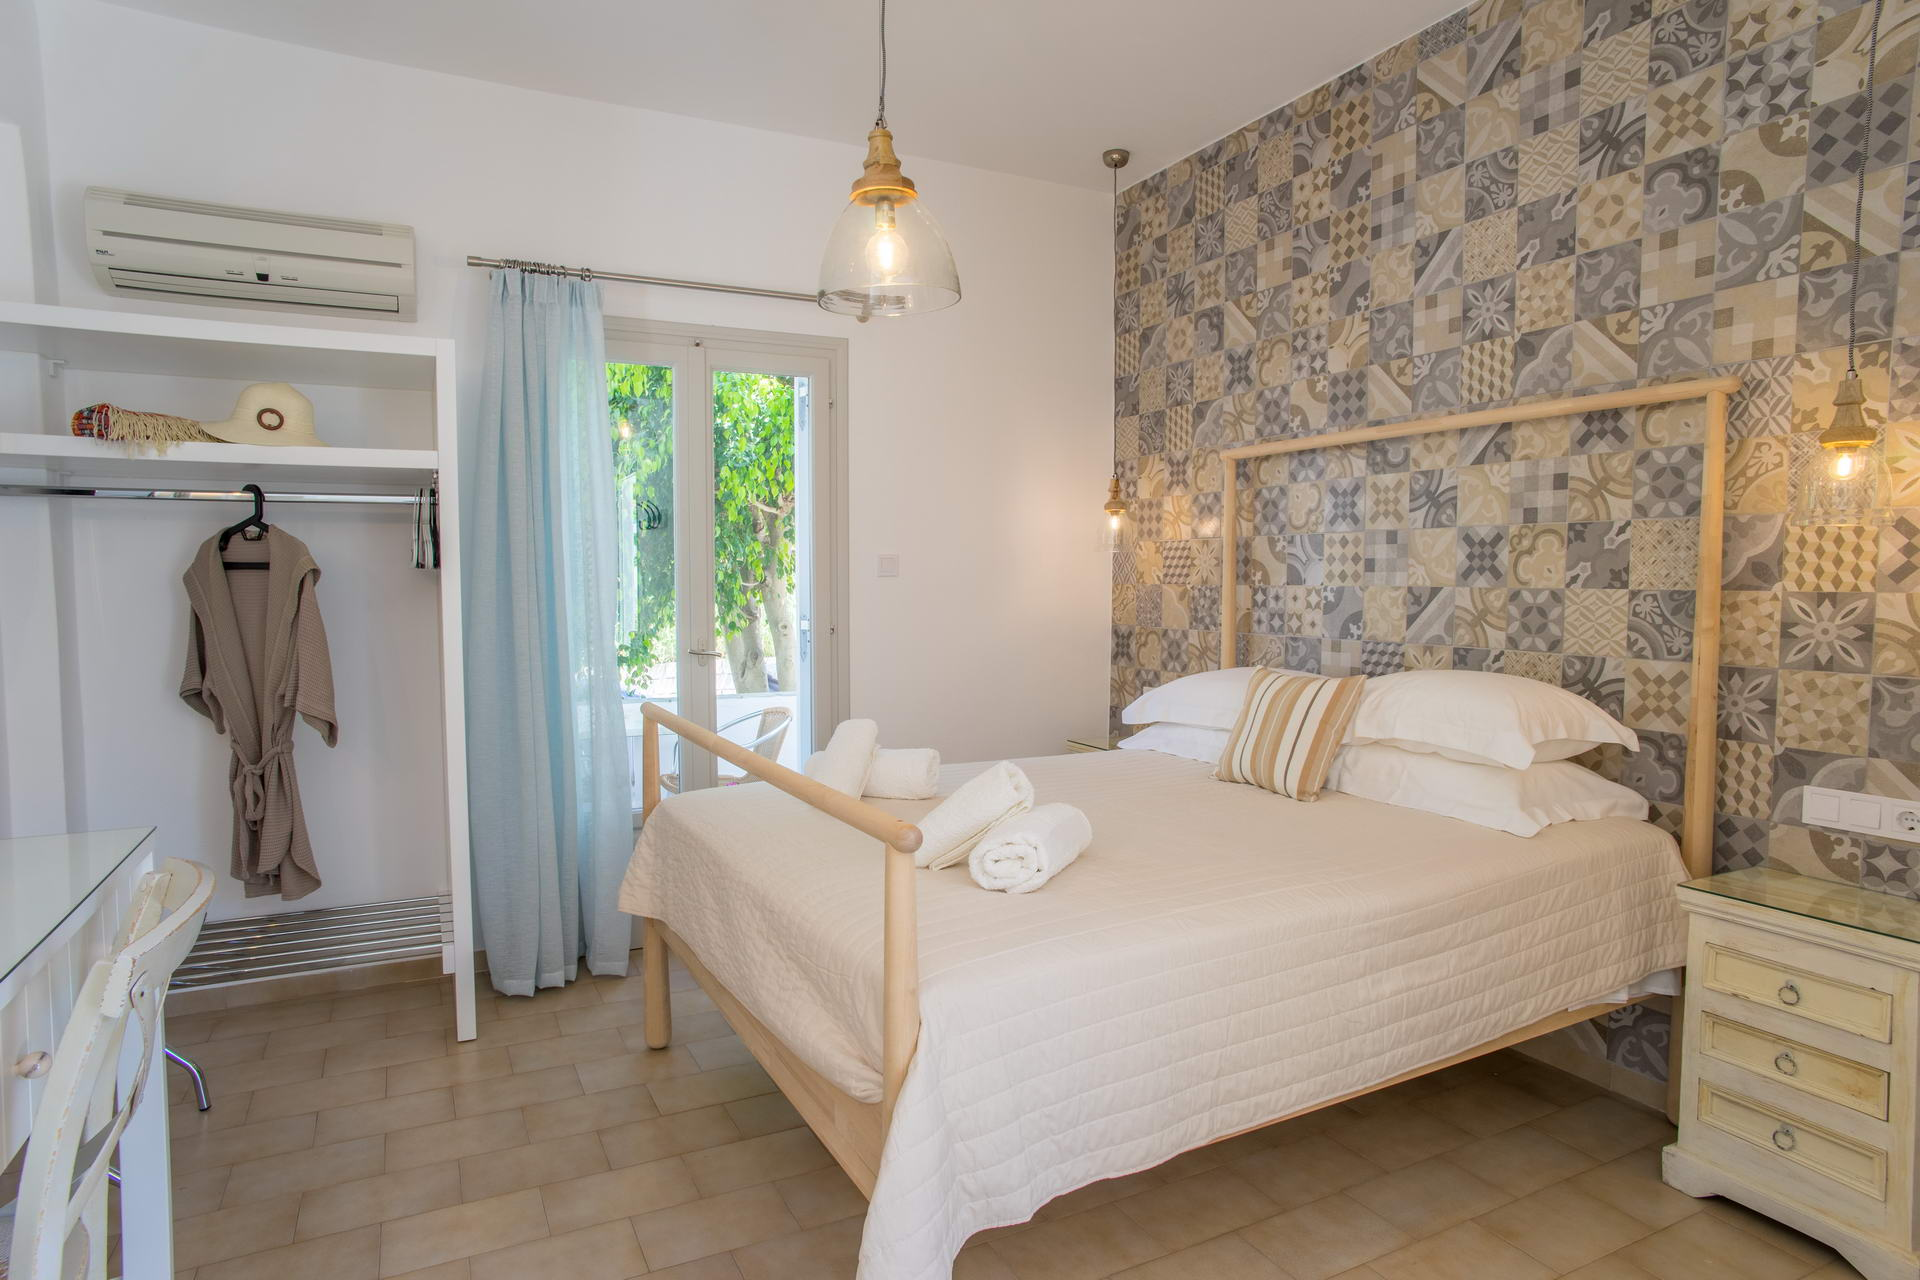 Hotel Cyclades Paros Greece Rooms